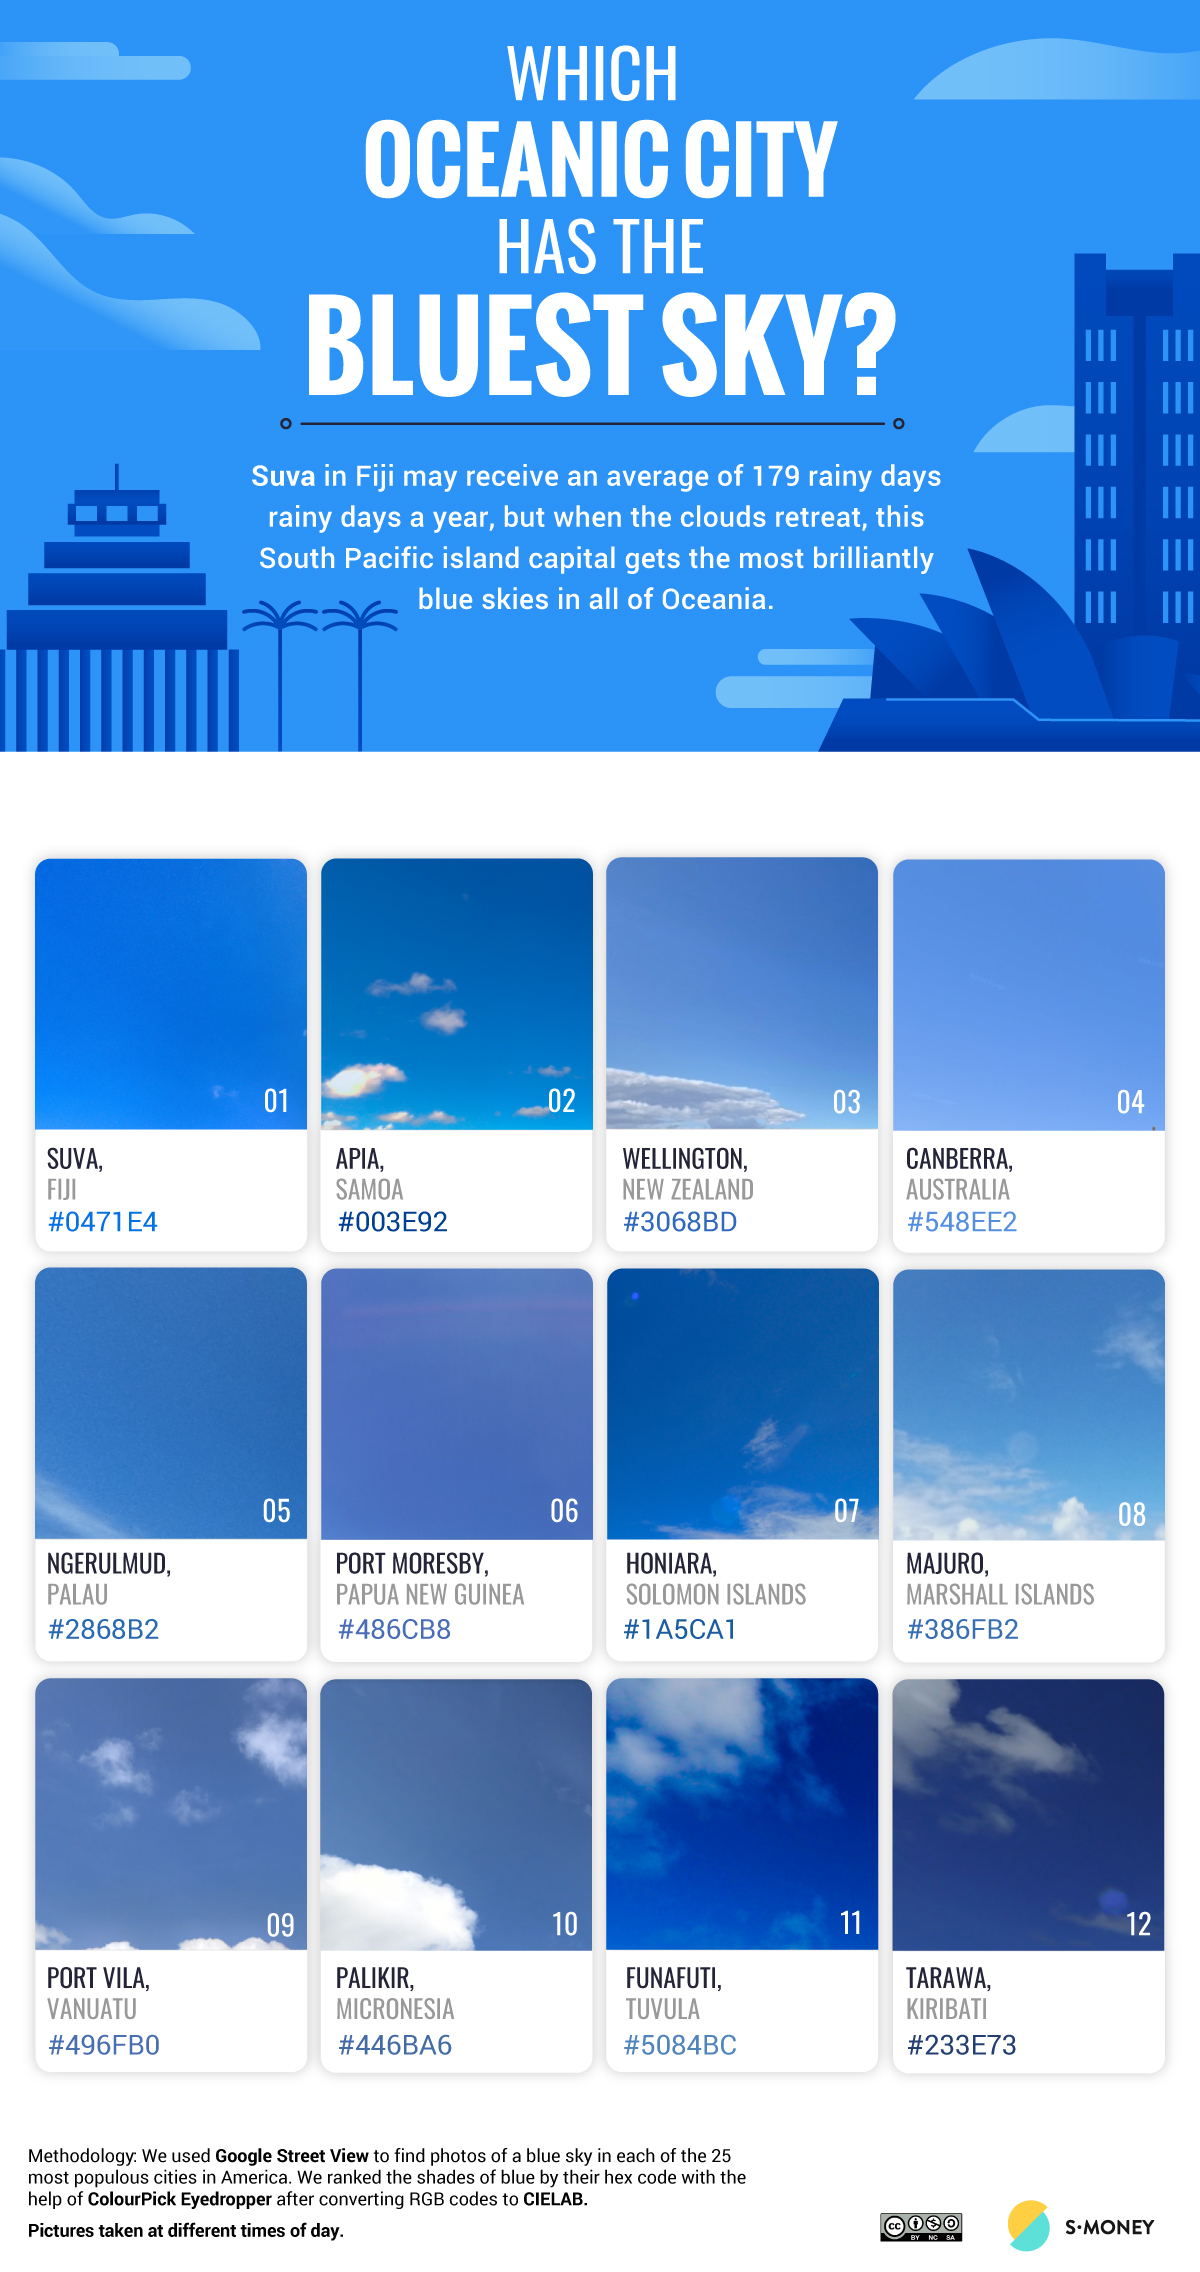 Which city has the bluest sky in Oceania